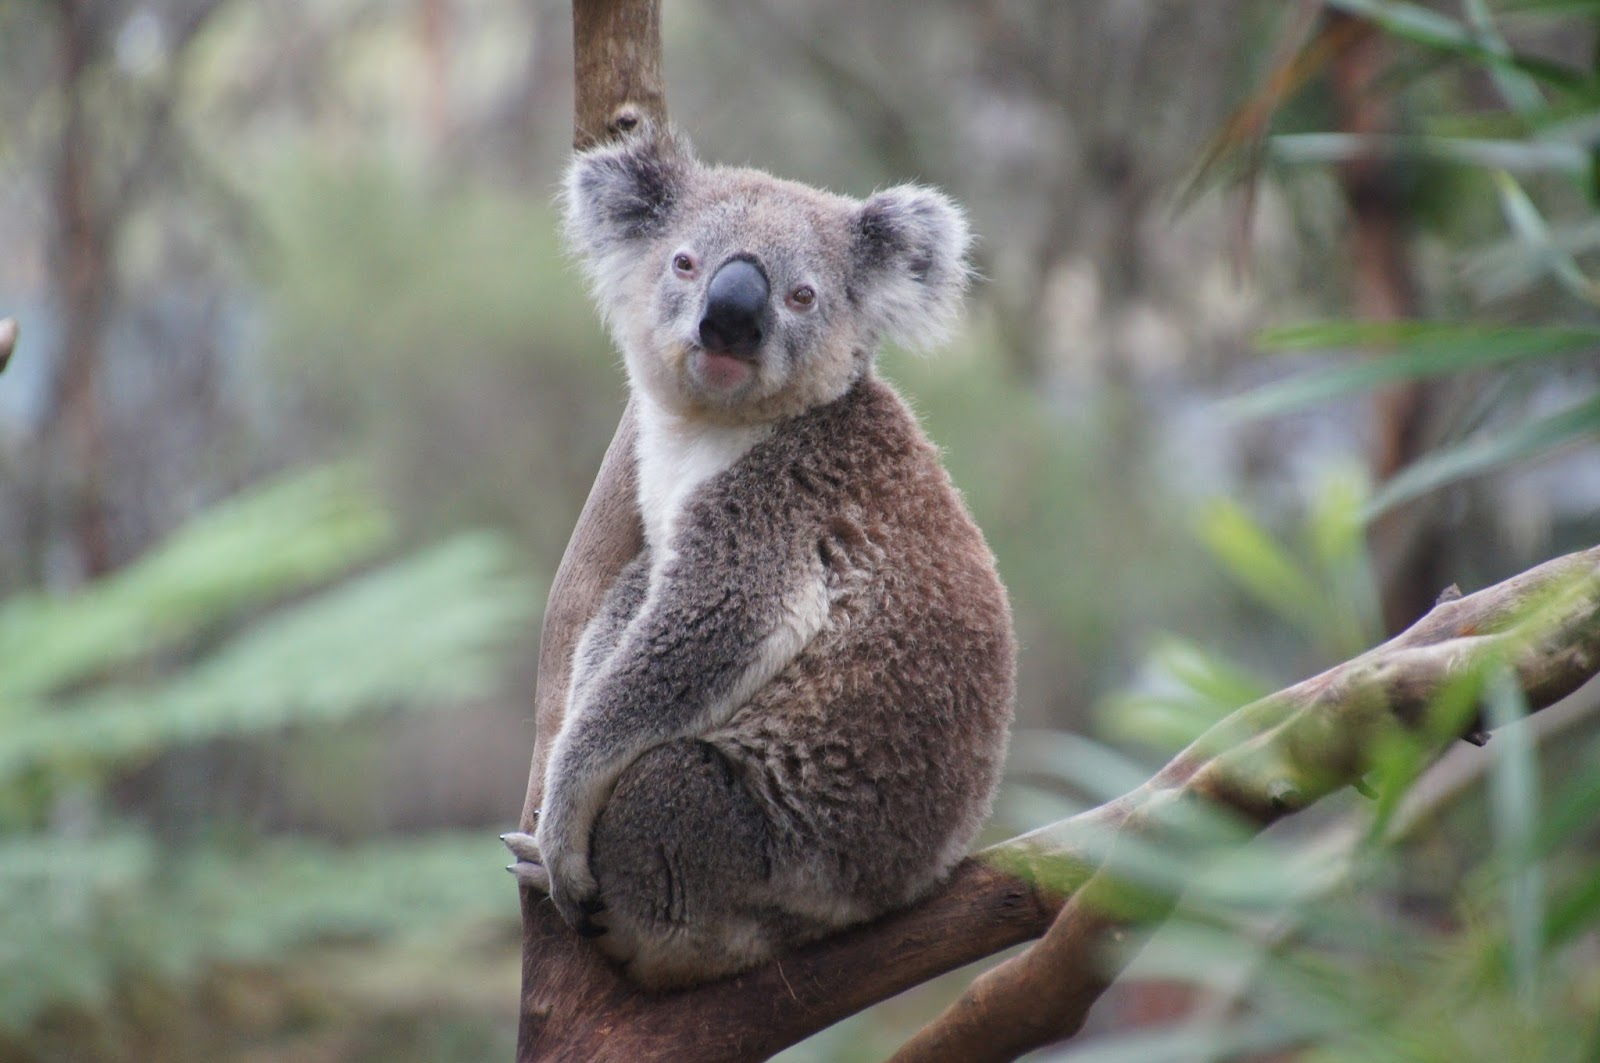 A koala sitting on a tree branch.